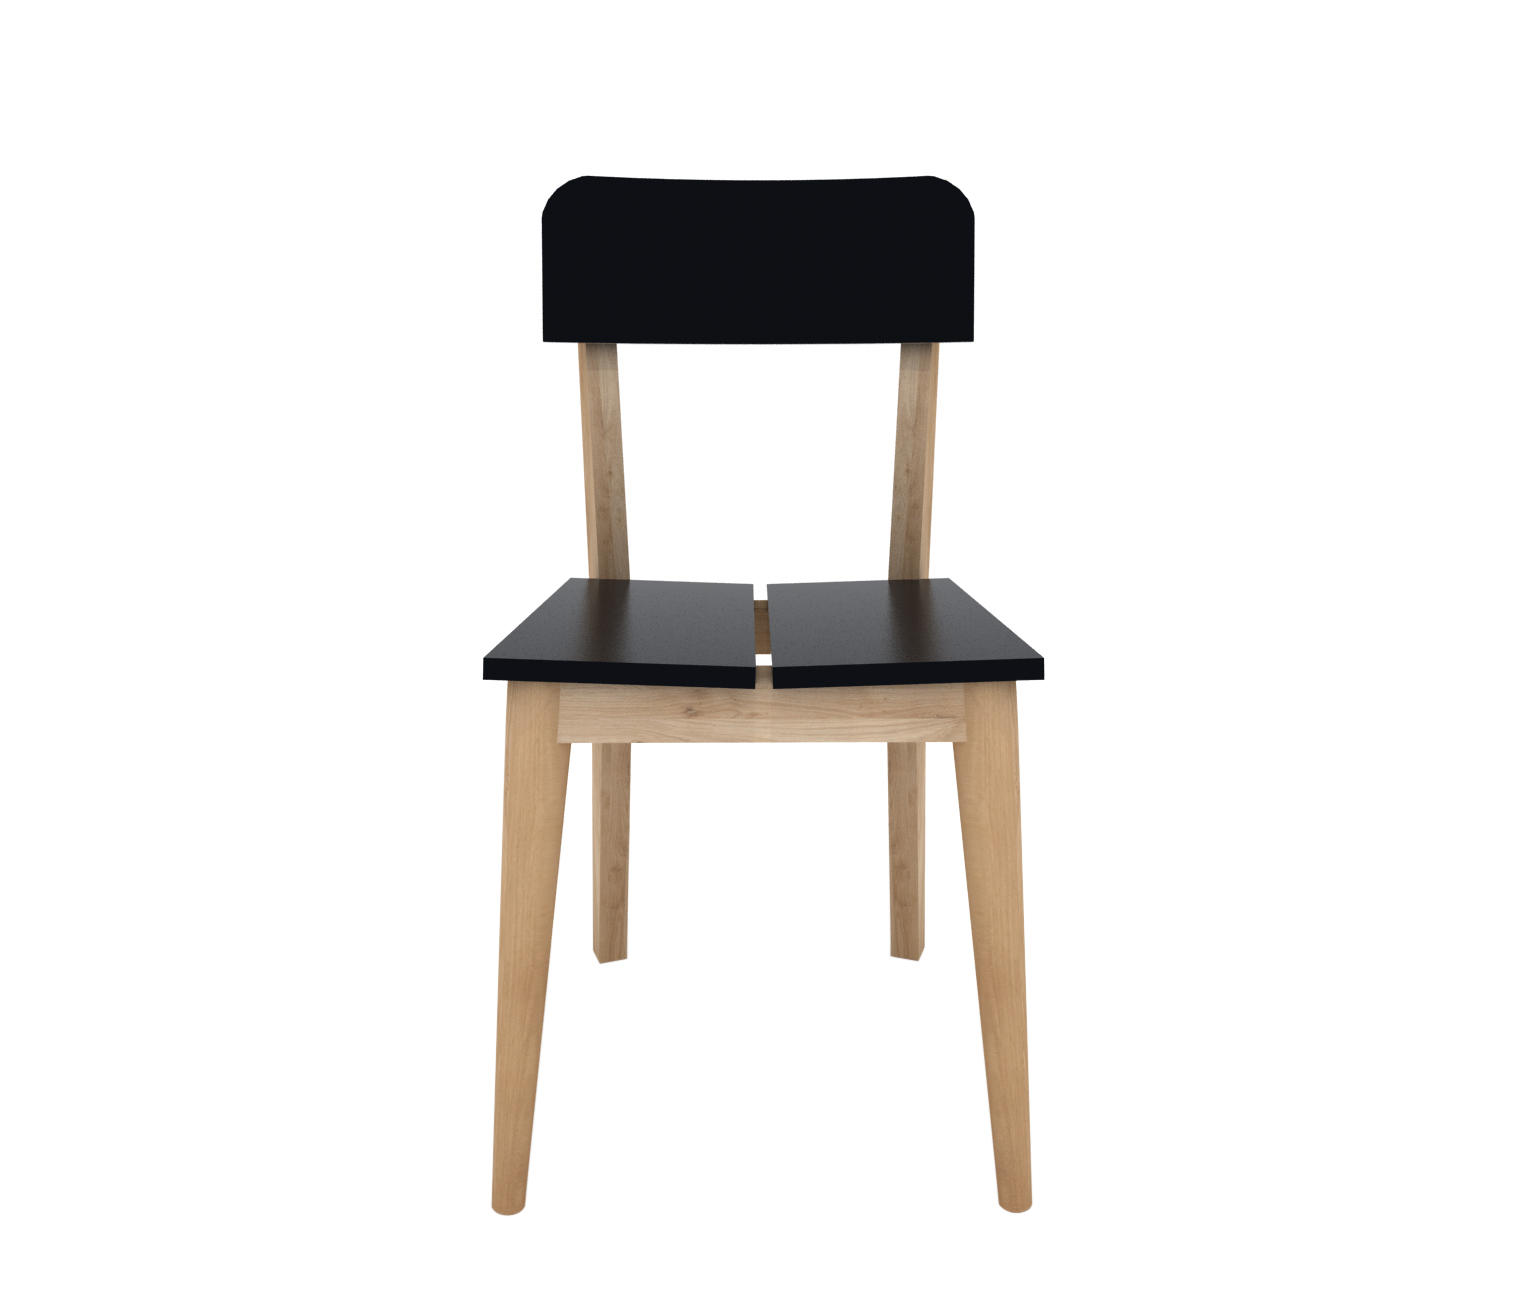 Oak m chair chaises de restaurant de ethnicraft architonic - Fabricant chaises belgique ...